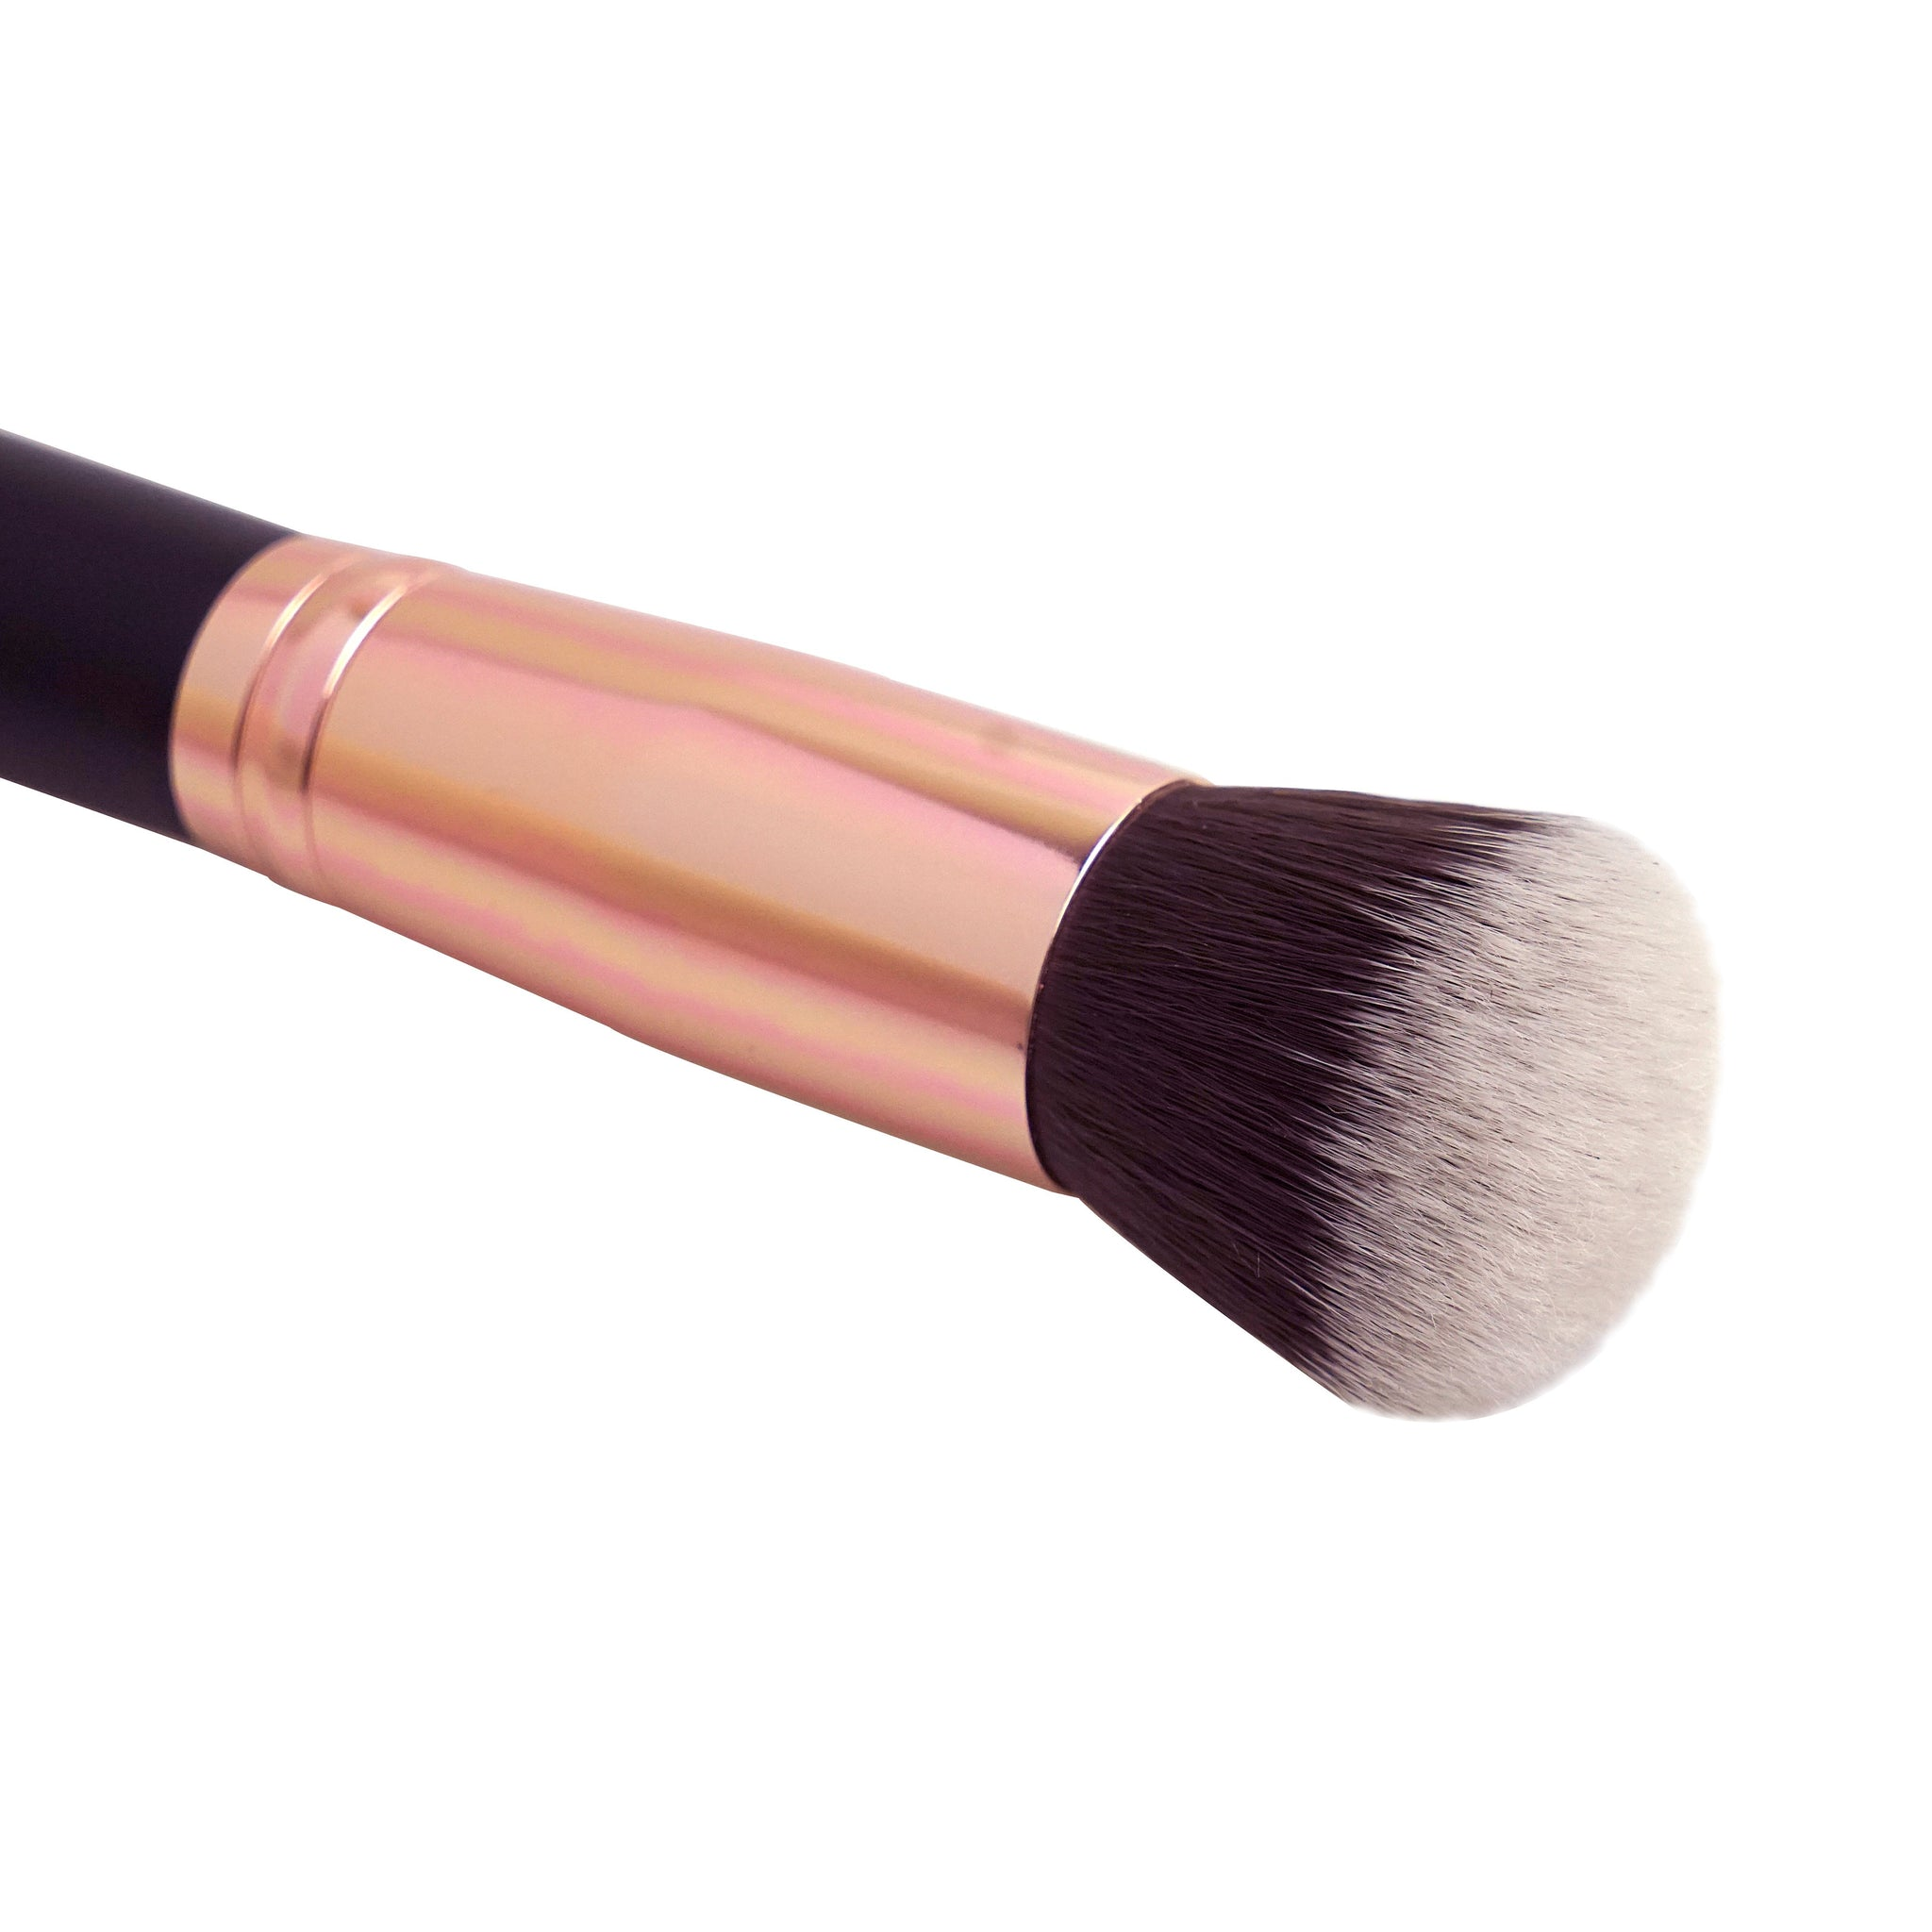 Gressa-Air-Focus-Foundation-Brush-Close-up